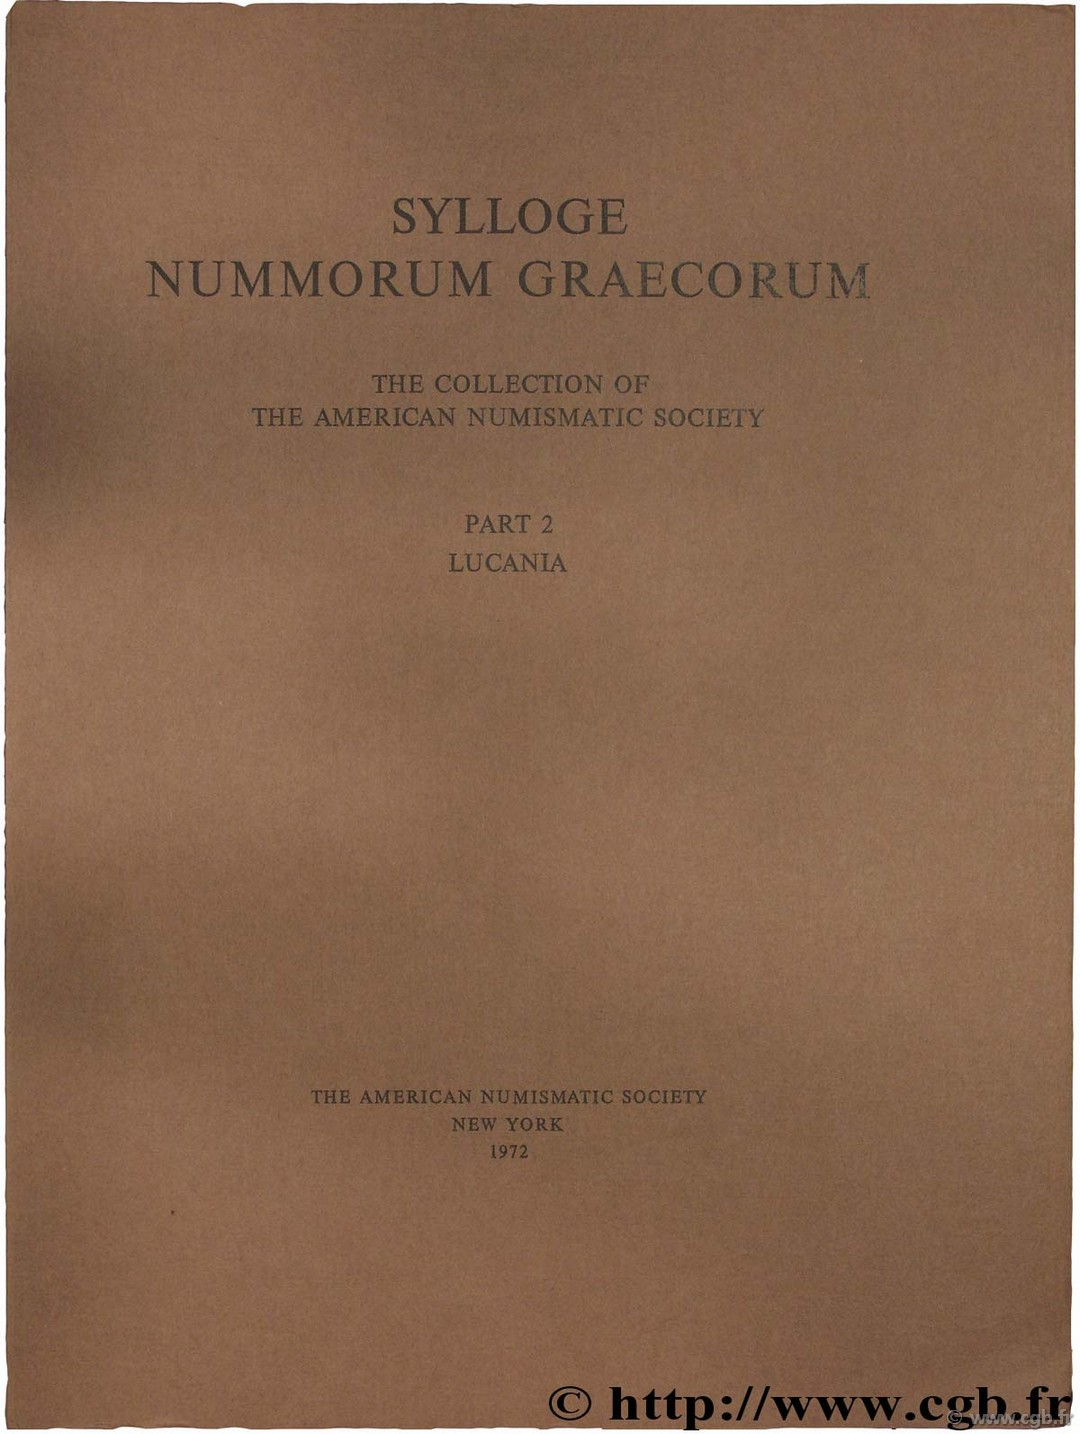 Sylloge Nummorum Graecorum (S.N.G.), The collection of the American Numismatic Society, part II, Lucania